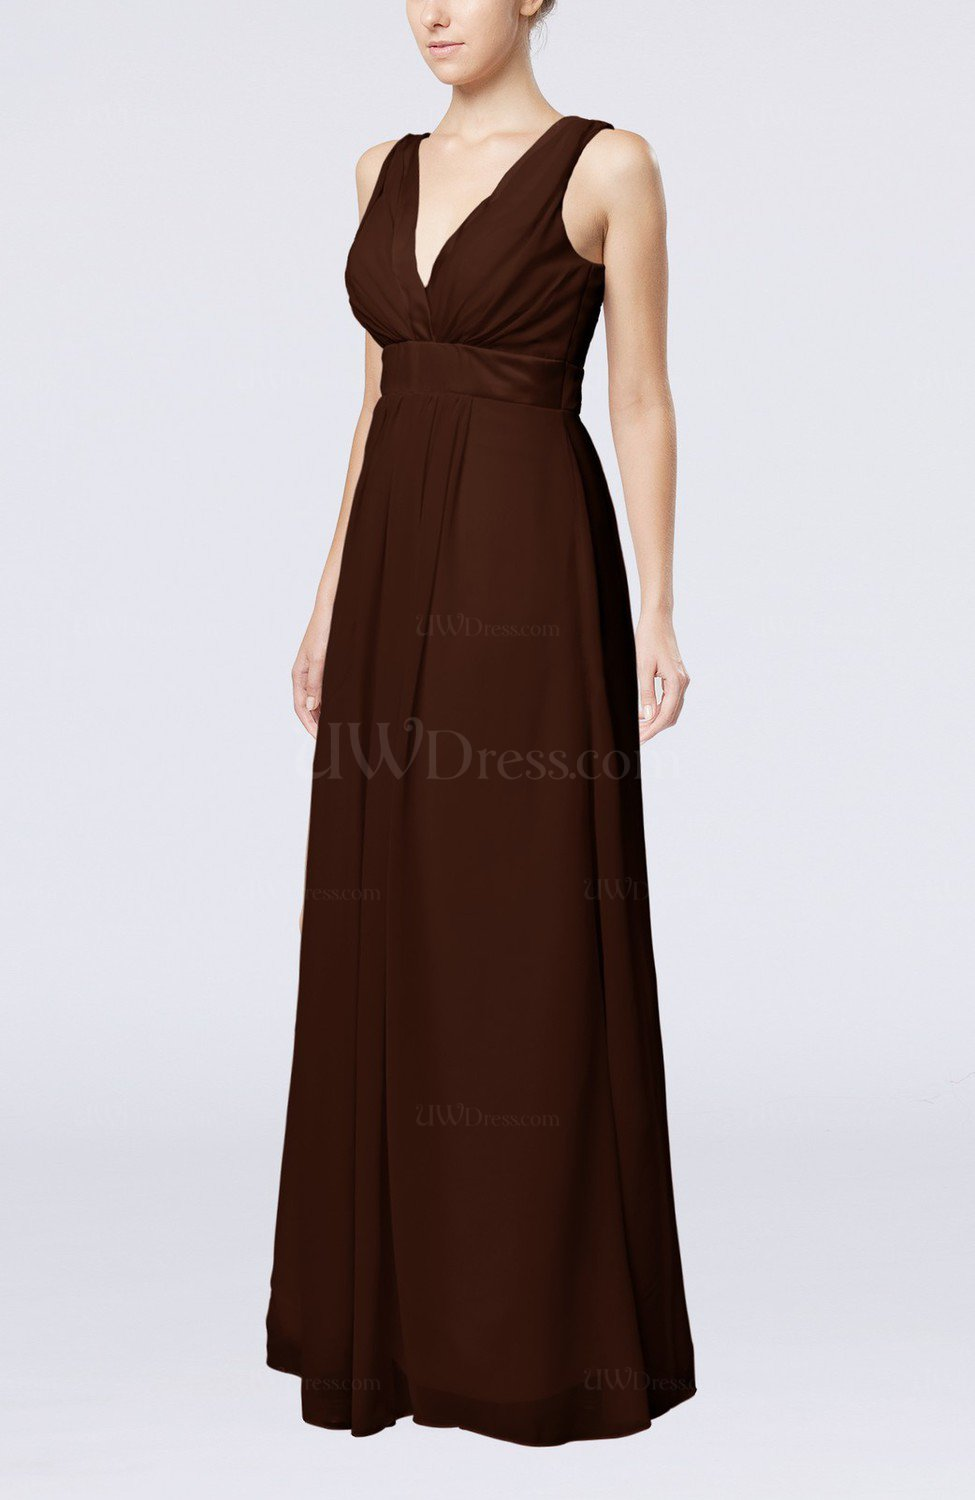 f62a9fce803 Chocolate Brown Plain V-neck Zip up Chiffon Sash Bridesmaid Dresses (Style  D31089)